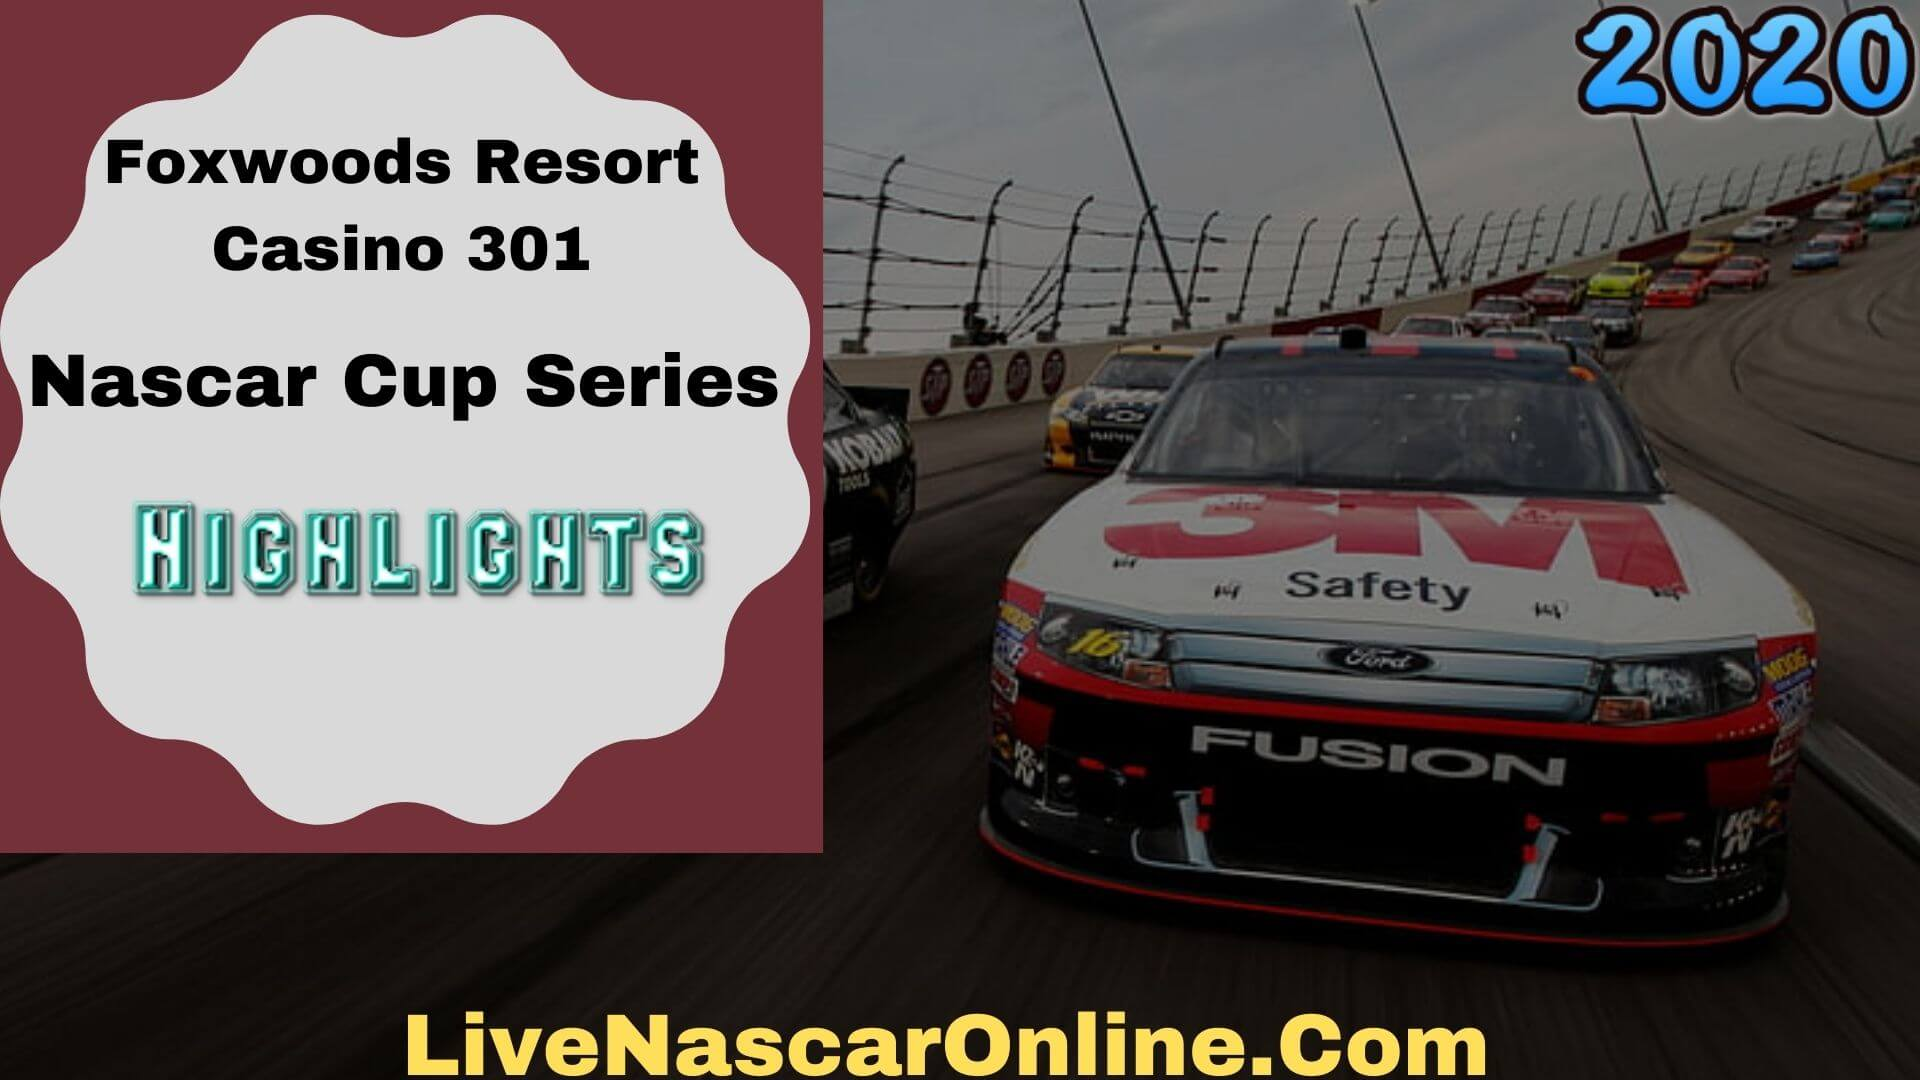 Foxwoods Resort Casino 301 Cup Series Highlights 2020